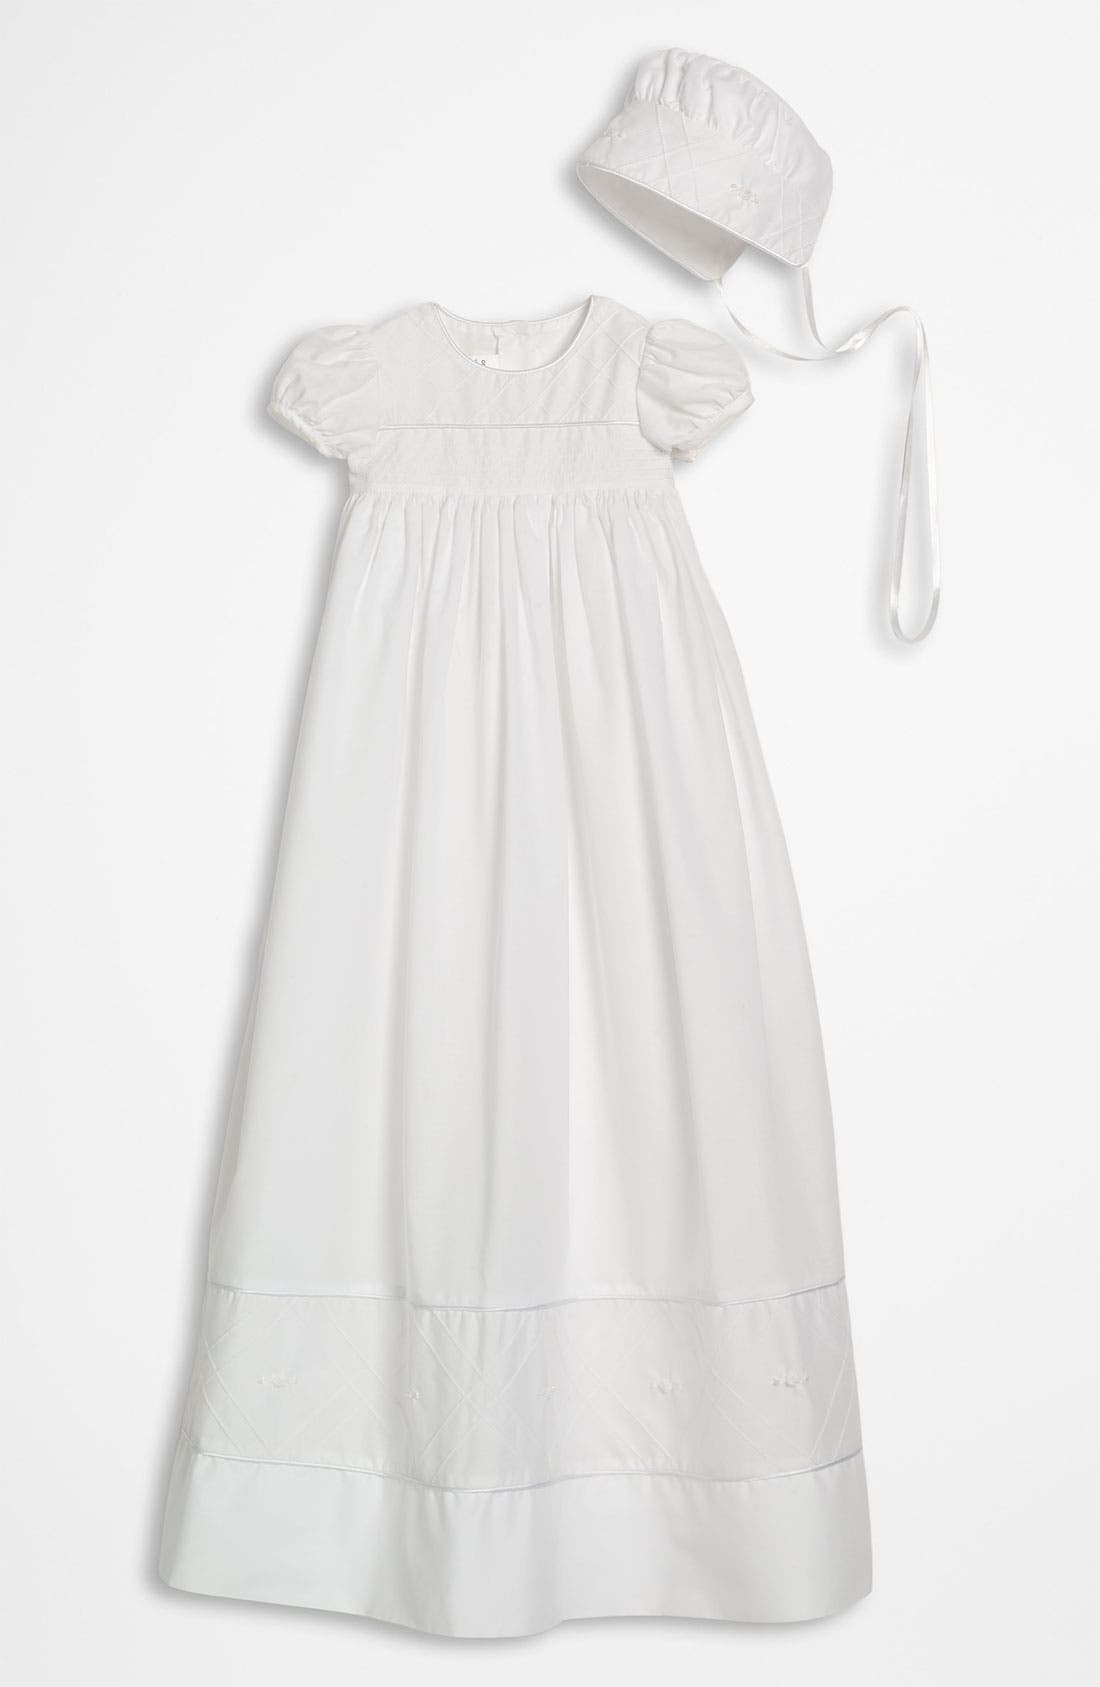 Gown & Bonnet,                         Main,                         color, White